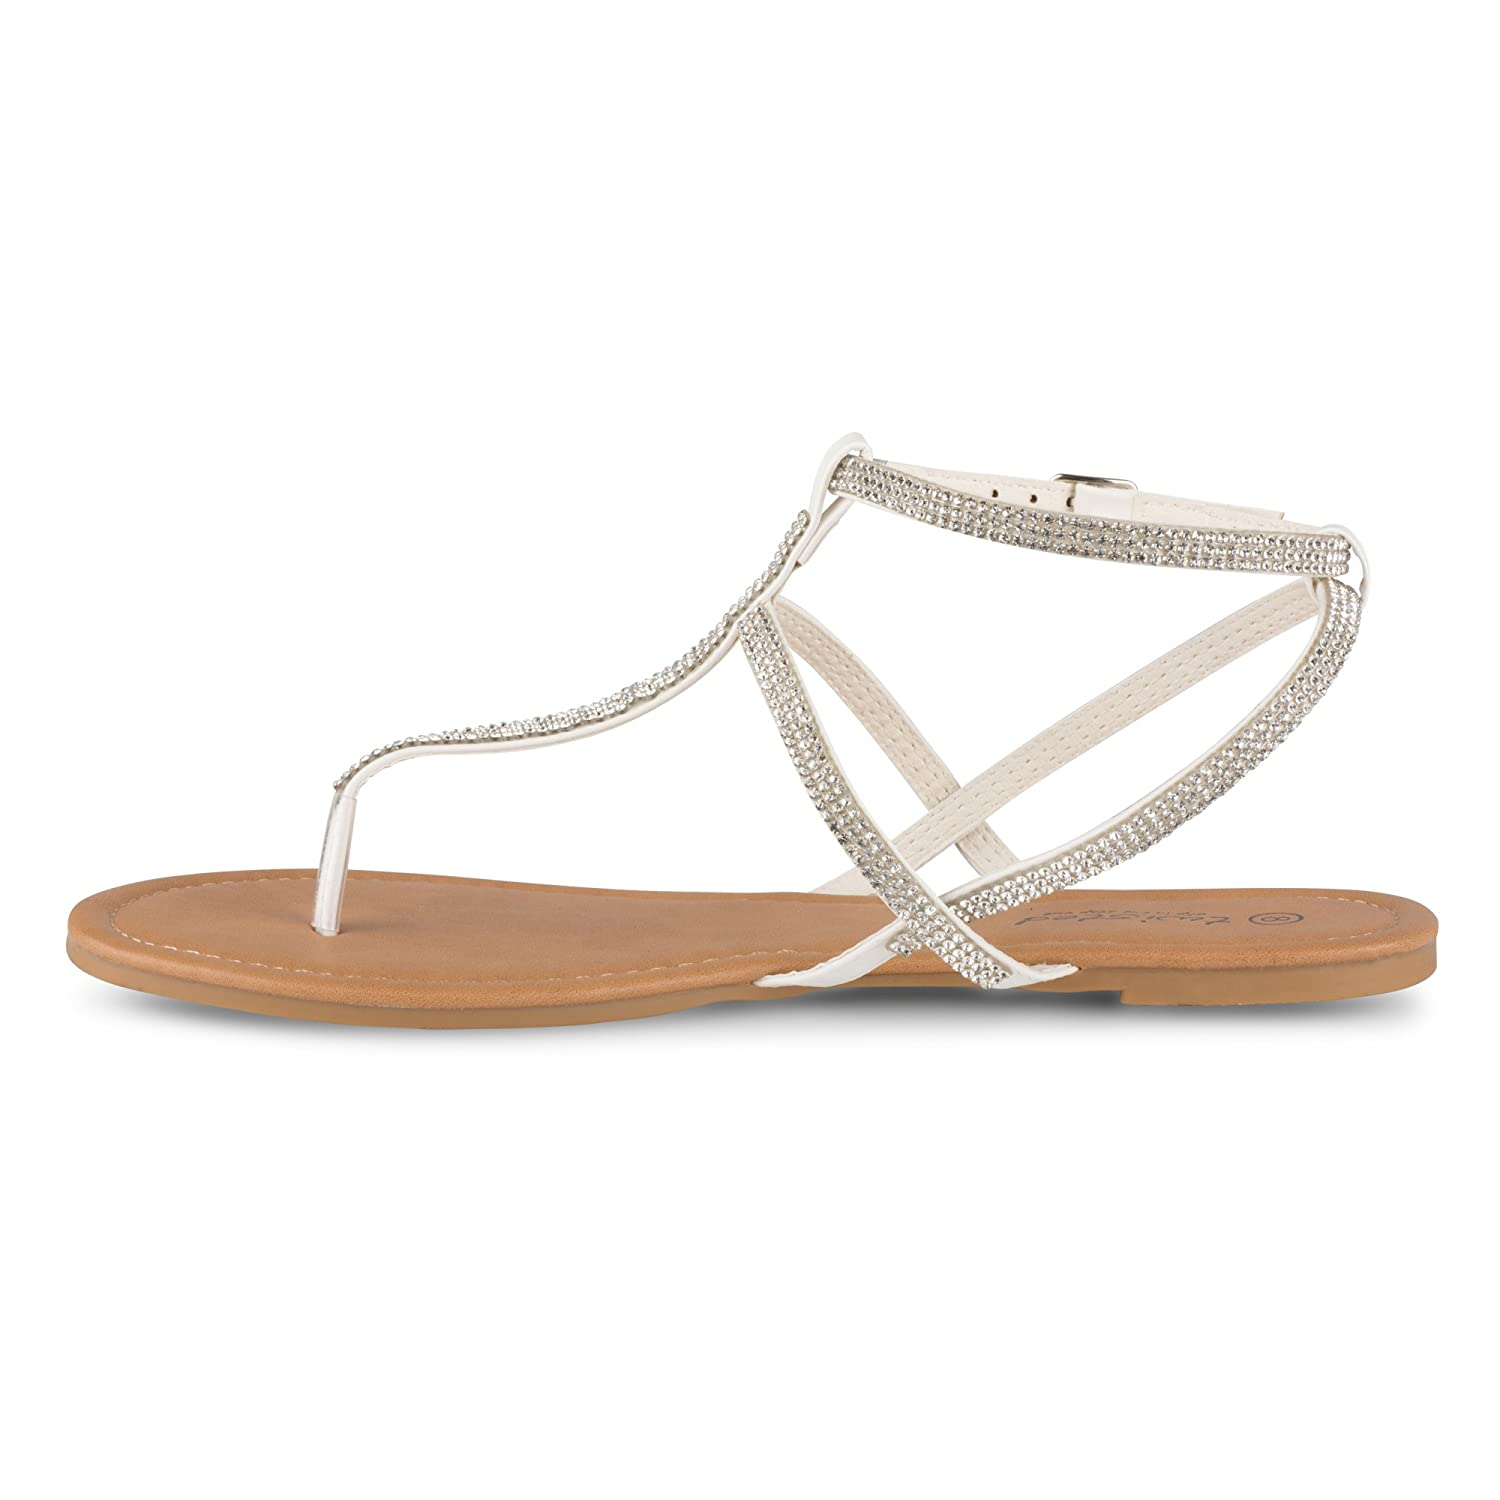 Twisted Womens Daisy Faux Leather Ankle Strap Sandal with Rhinestone Embellishment